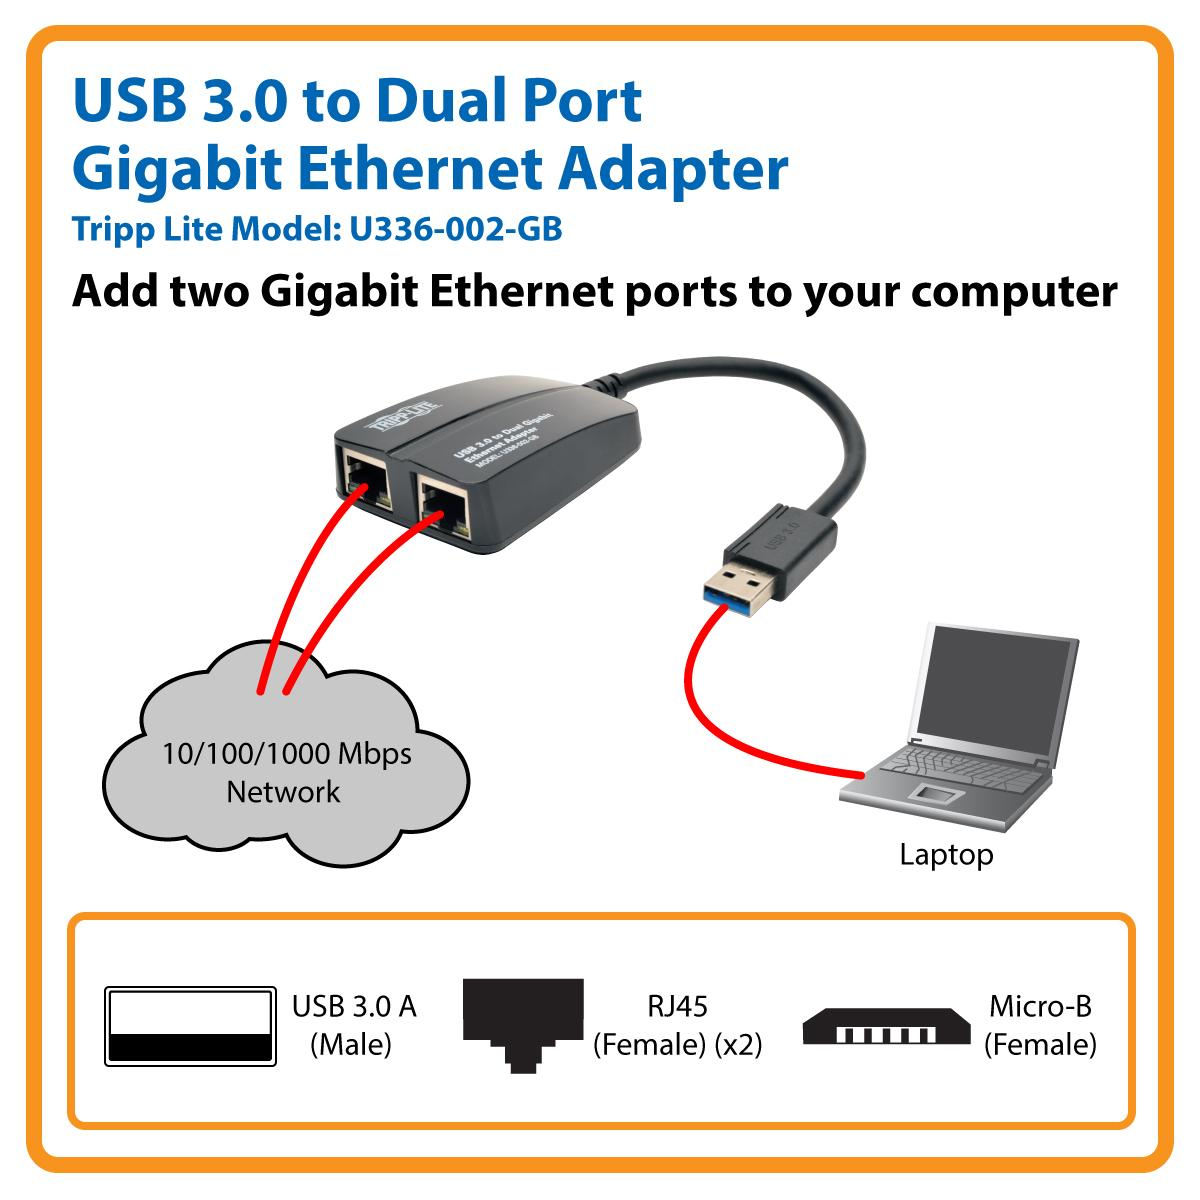 how to tell if ethernet port is gigabit